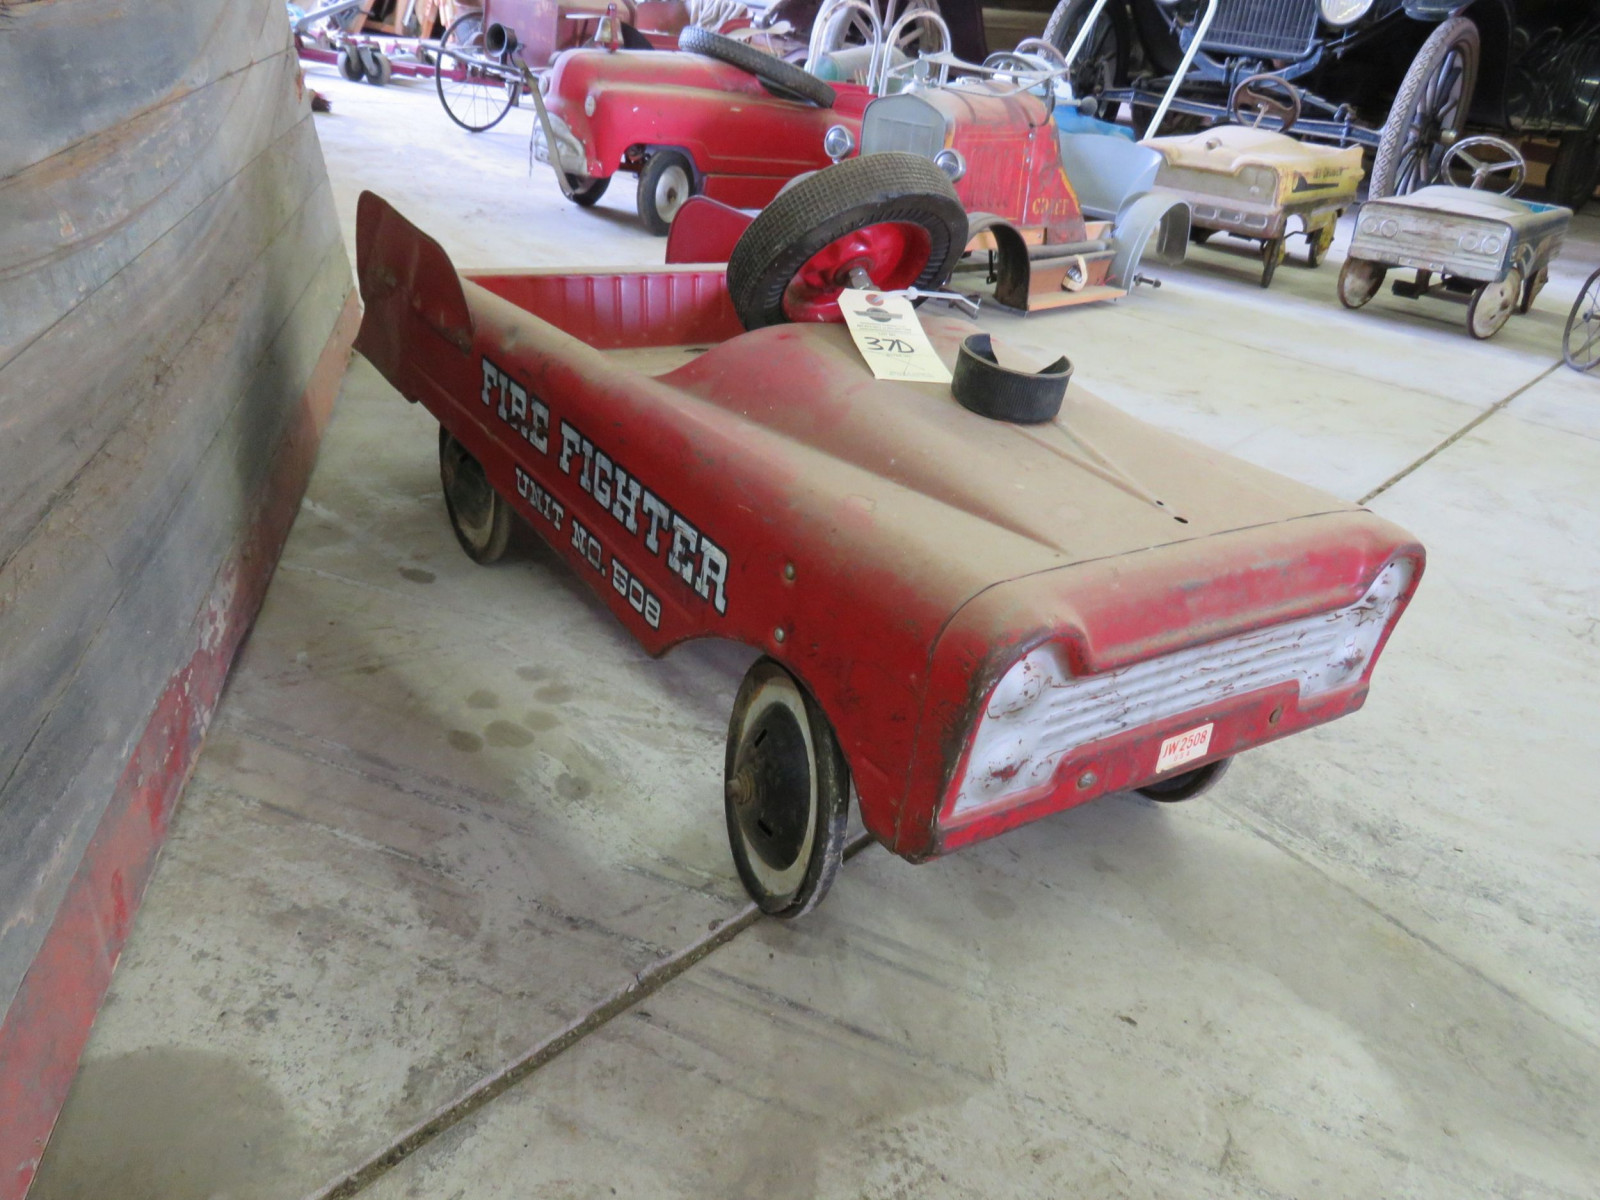 Steel craft Fire Fighter #508 Pedal Car - Image 2